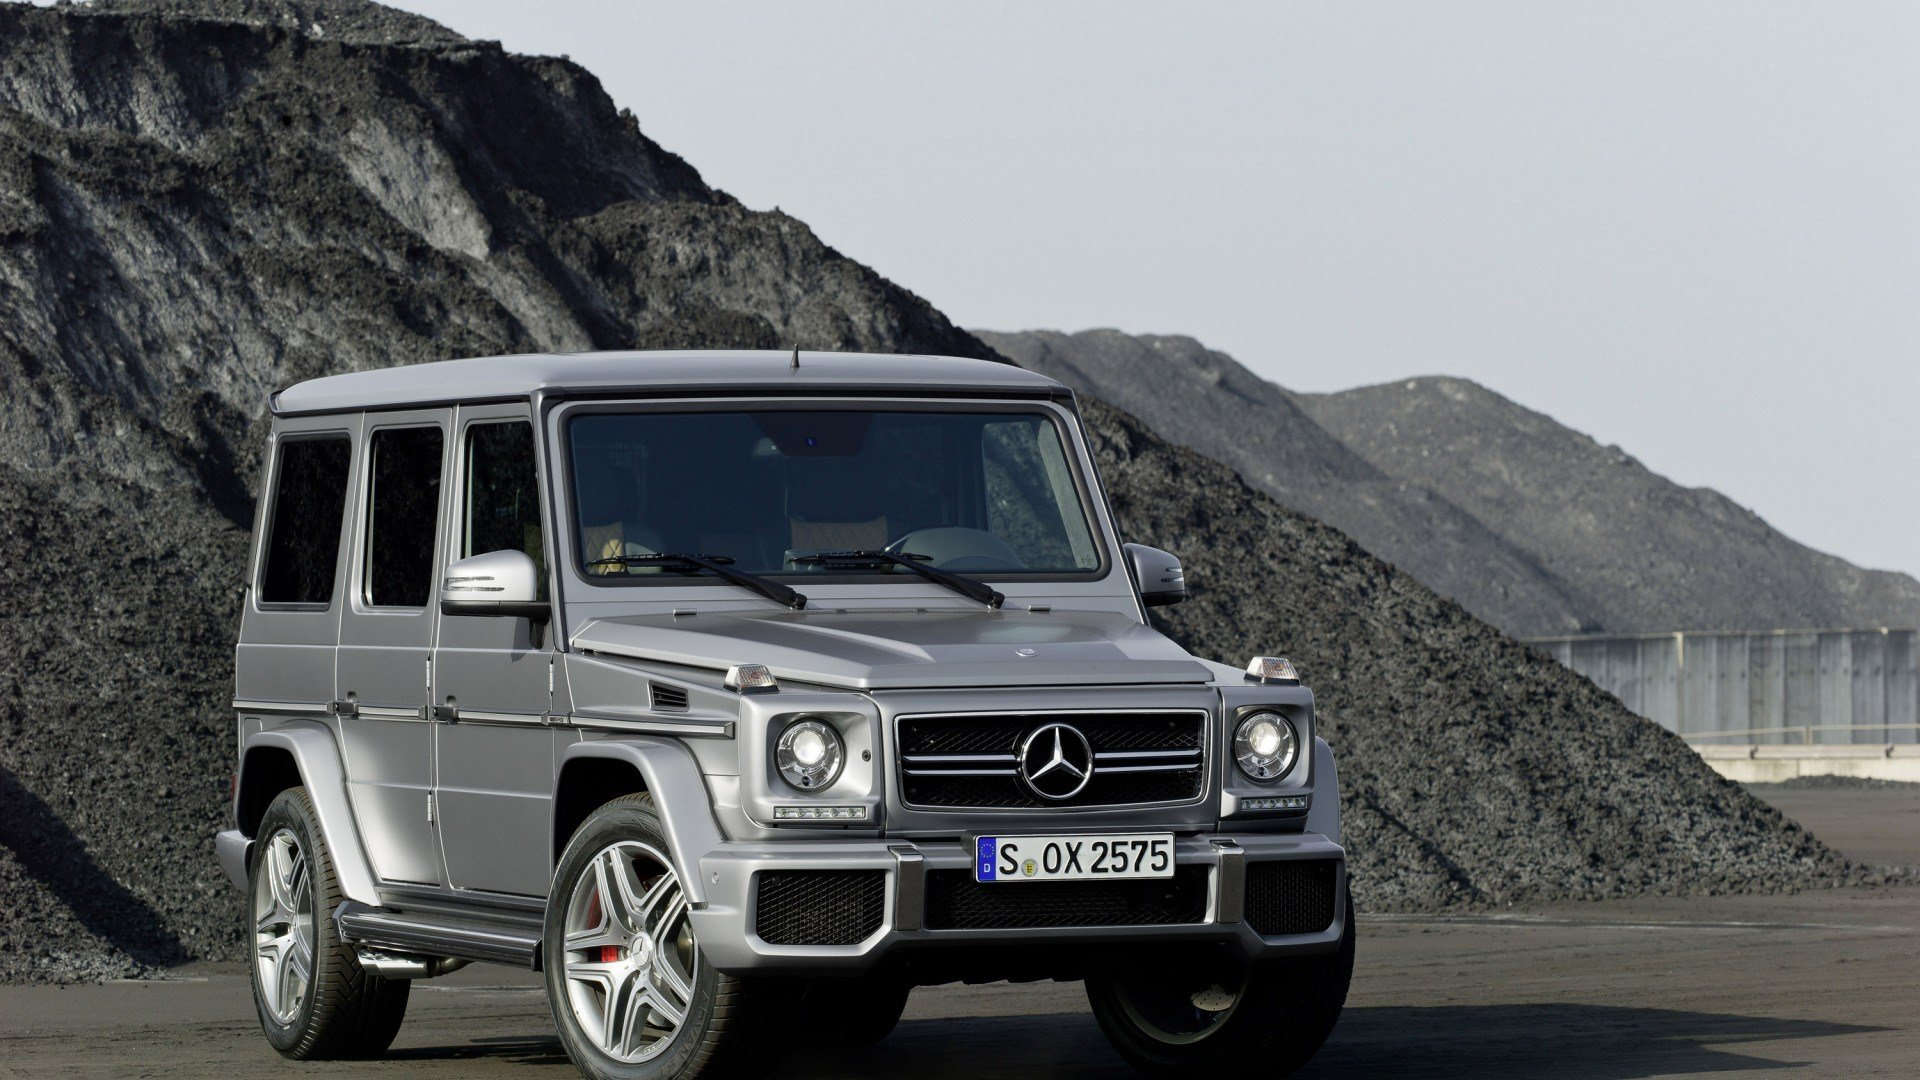 Latest 2012 Mercedes Benz G63 Amg Car Free Download Wallpaper Free Download